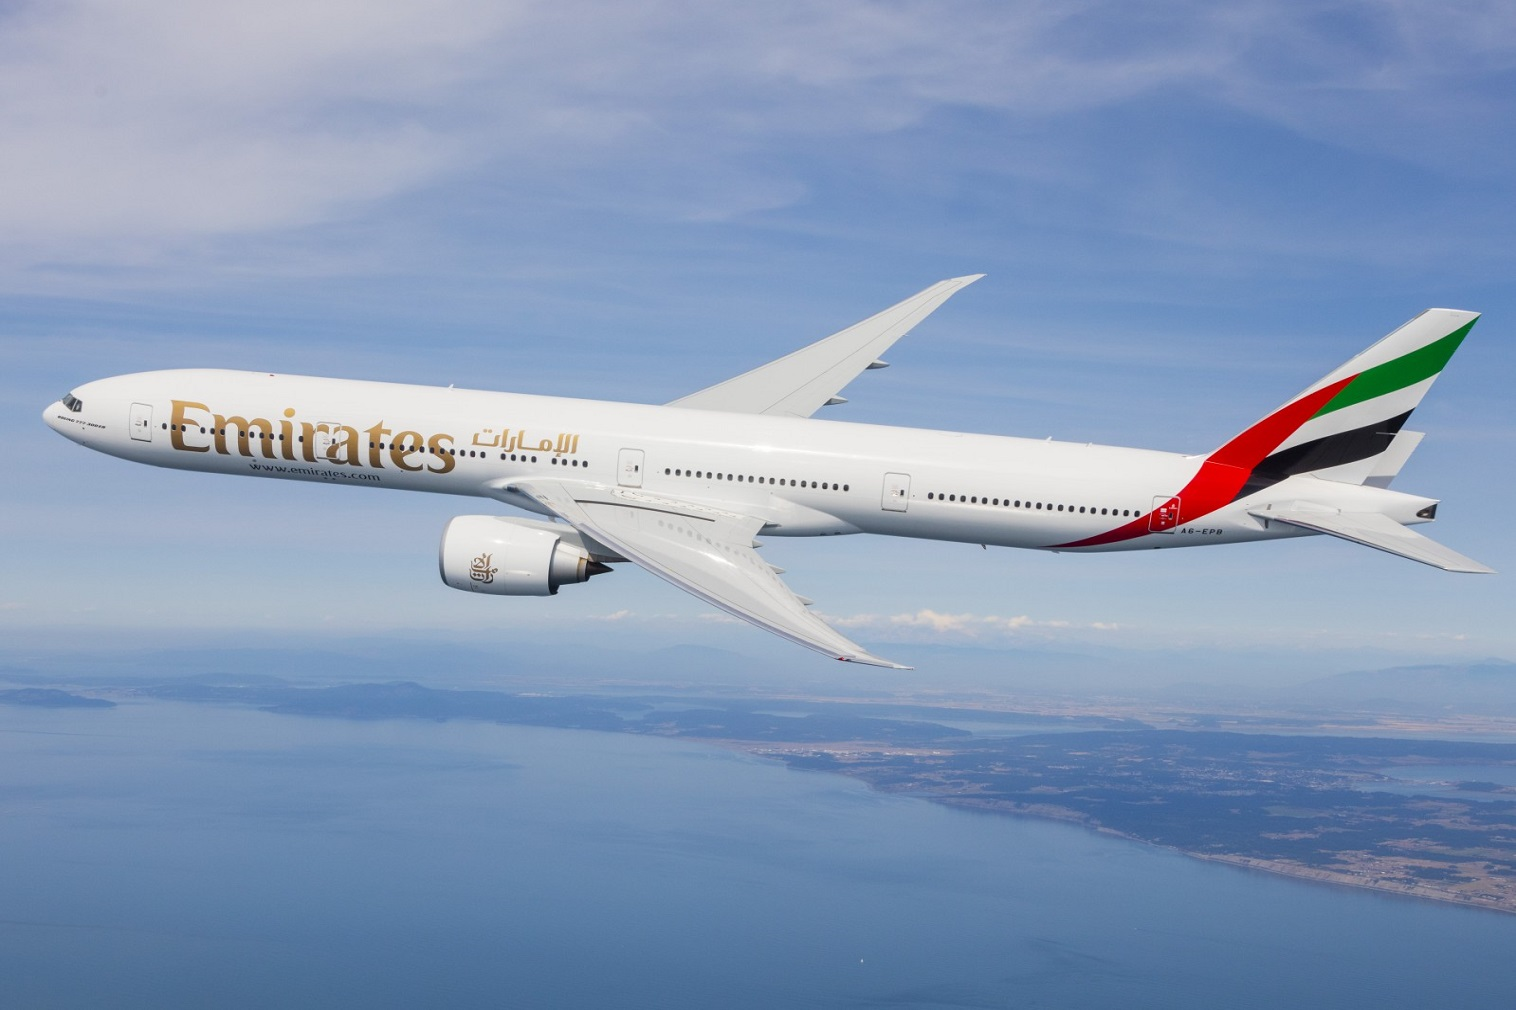 Emirates has announced it will resume daily services to Newark via Athens from 1st June 2021.